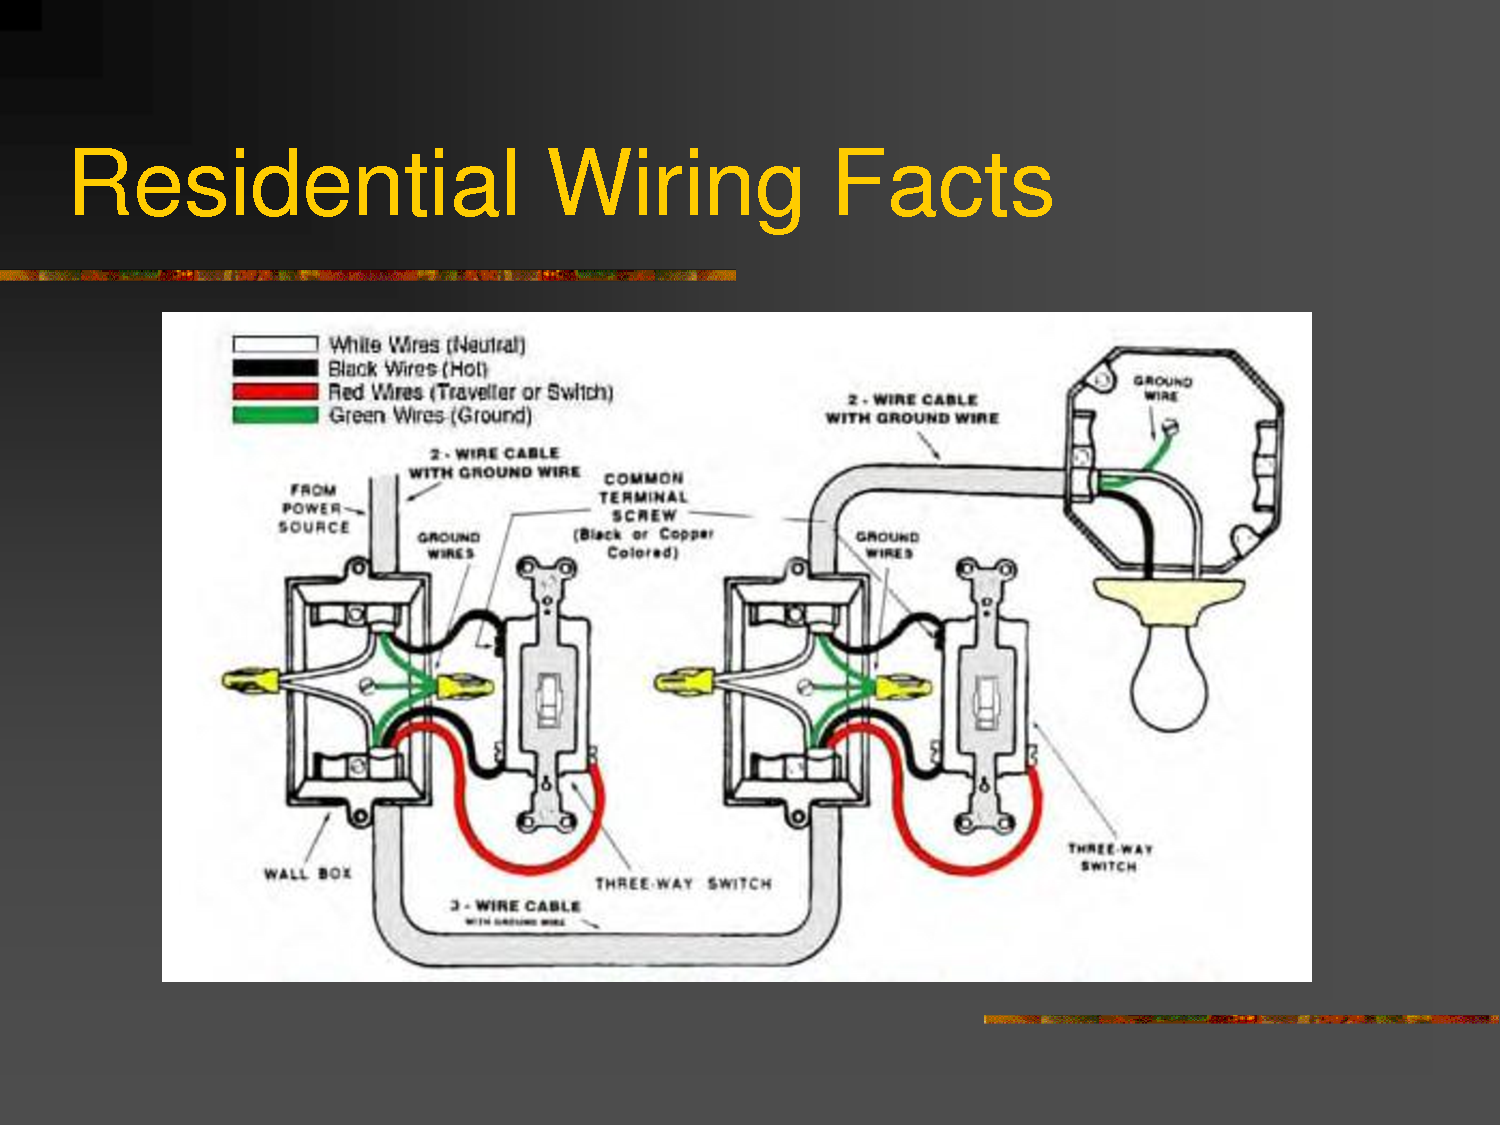 4 Best Images Of Residential Wiring Diagrams House Electrical 3 Way Switch A Switched Receptacle And Light